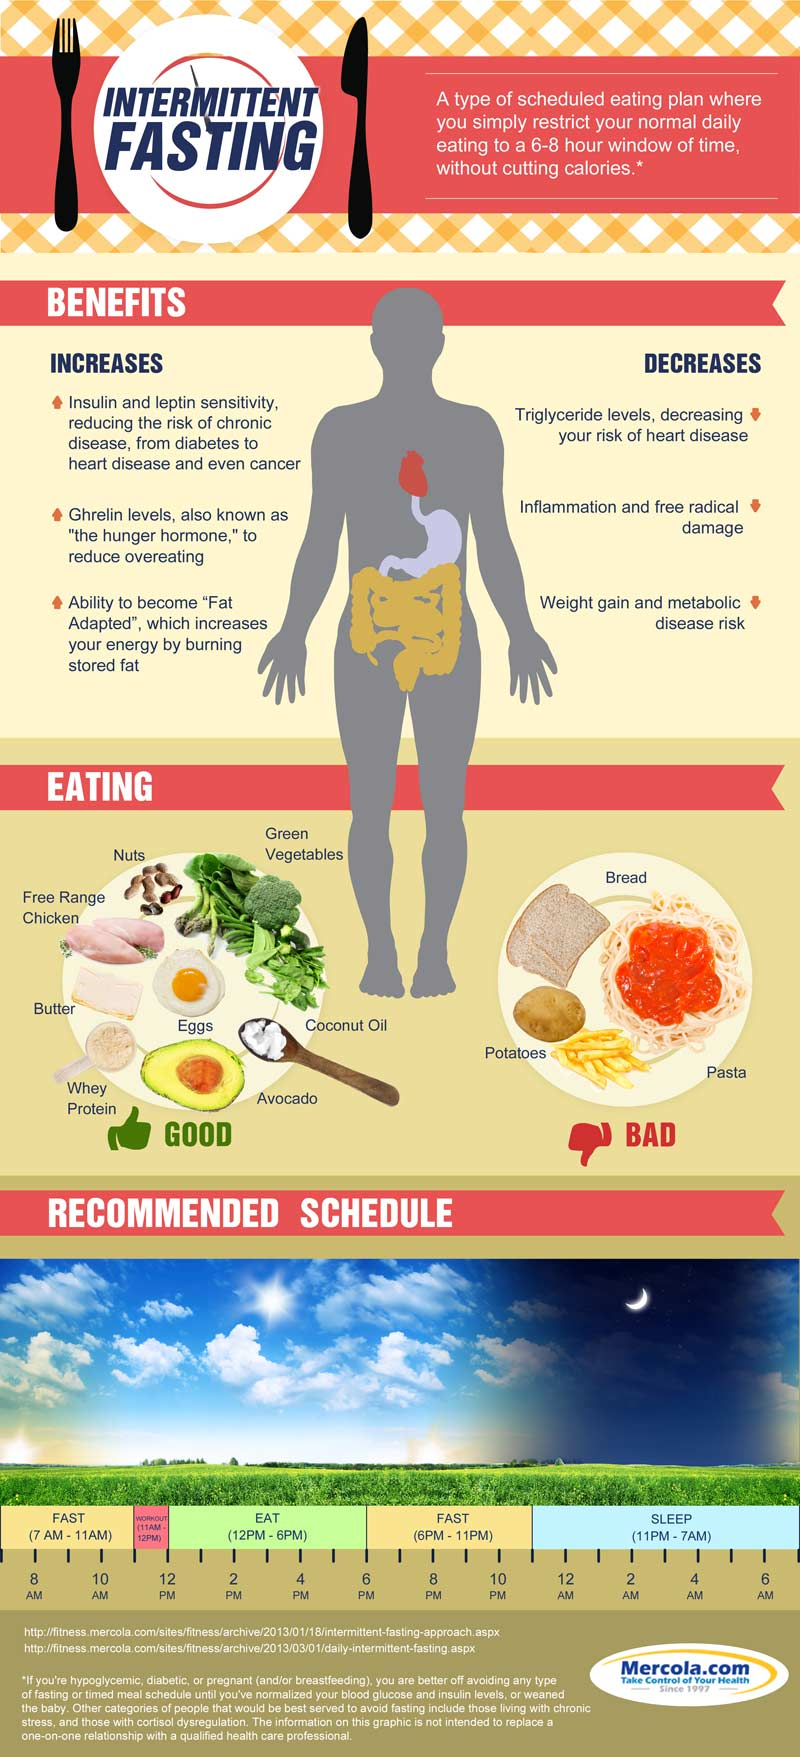 6 benefits of fasting